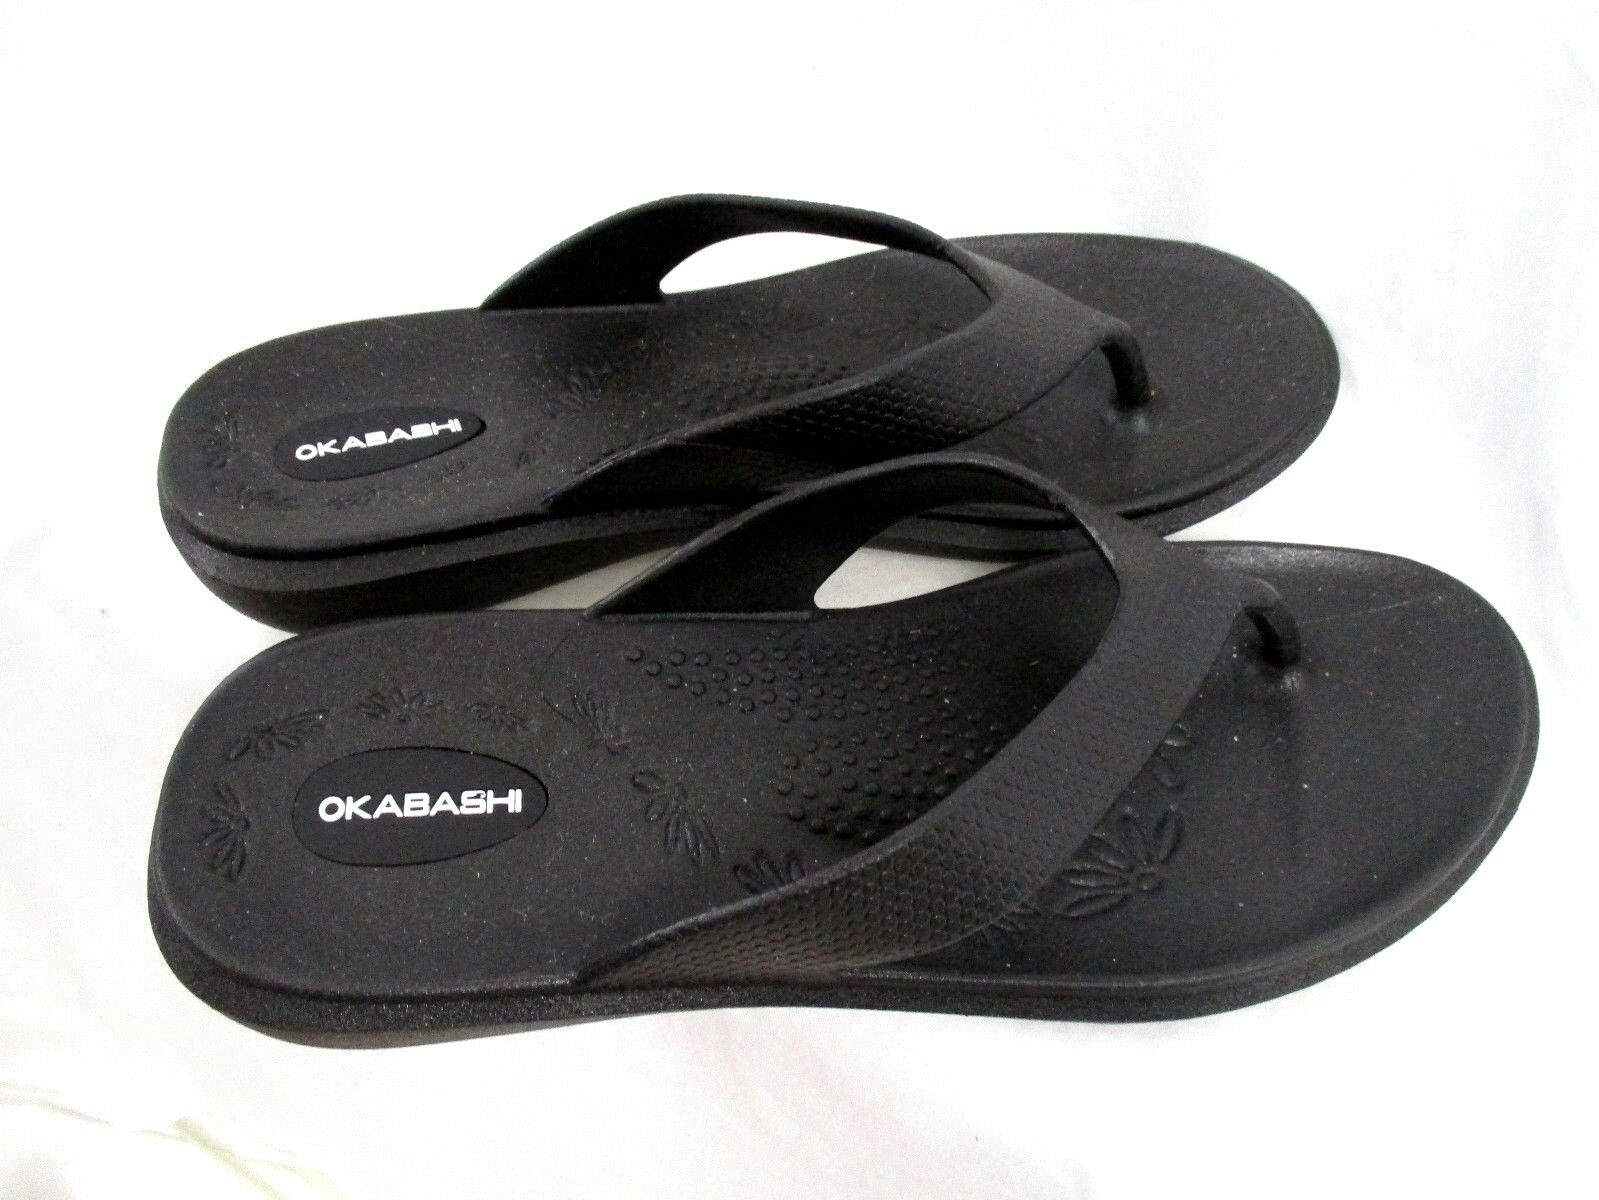 Okabashi Womens Black Ergonomic Sandals Flip Flops Slip On Size Medium FY6